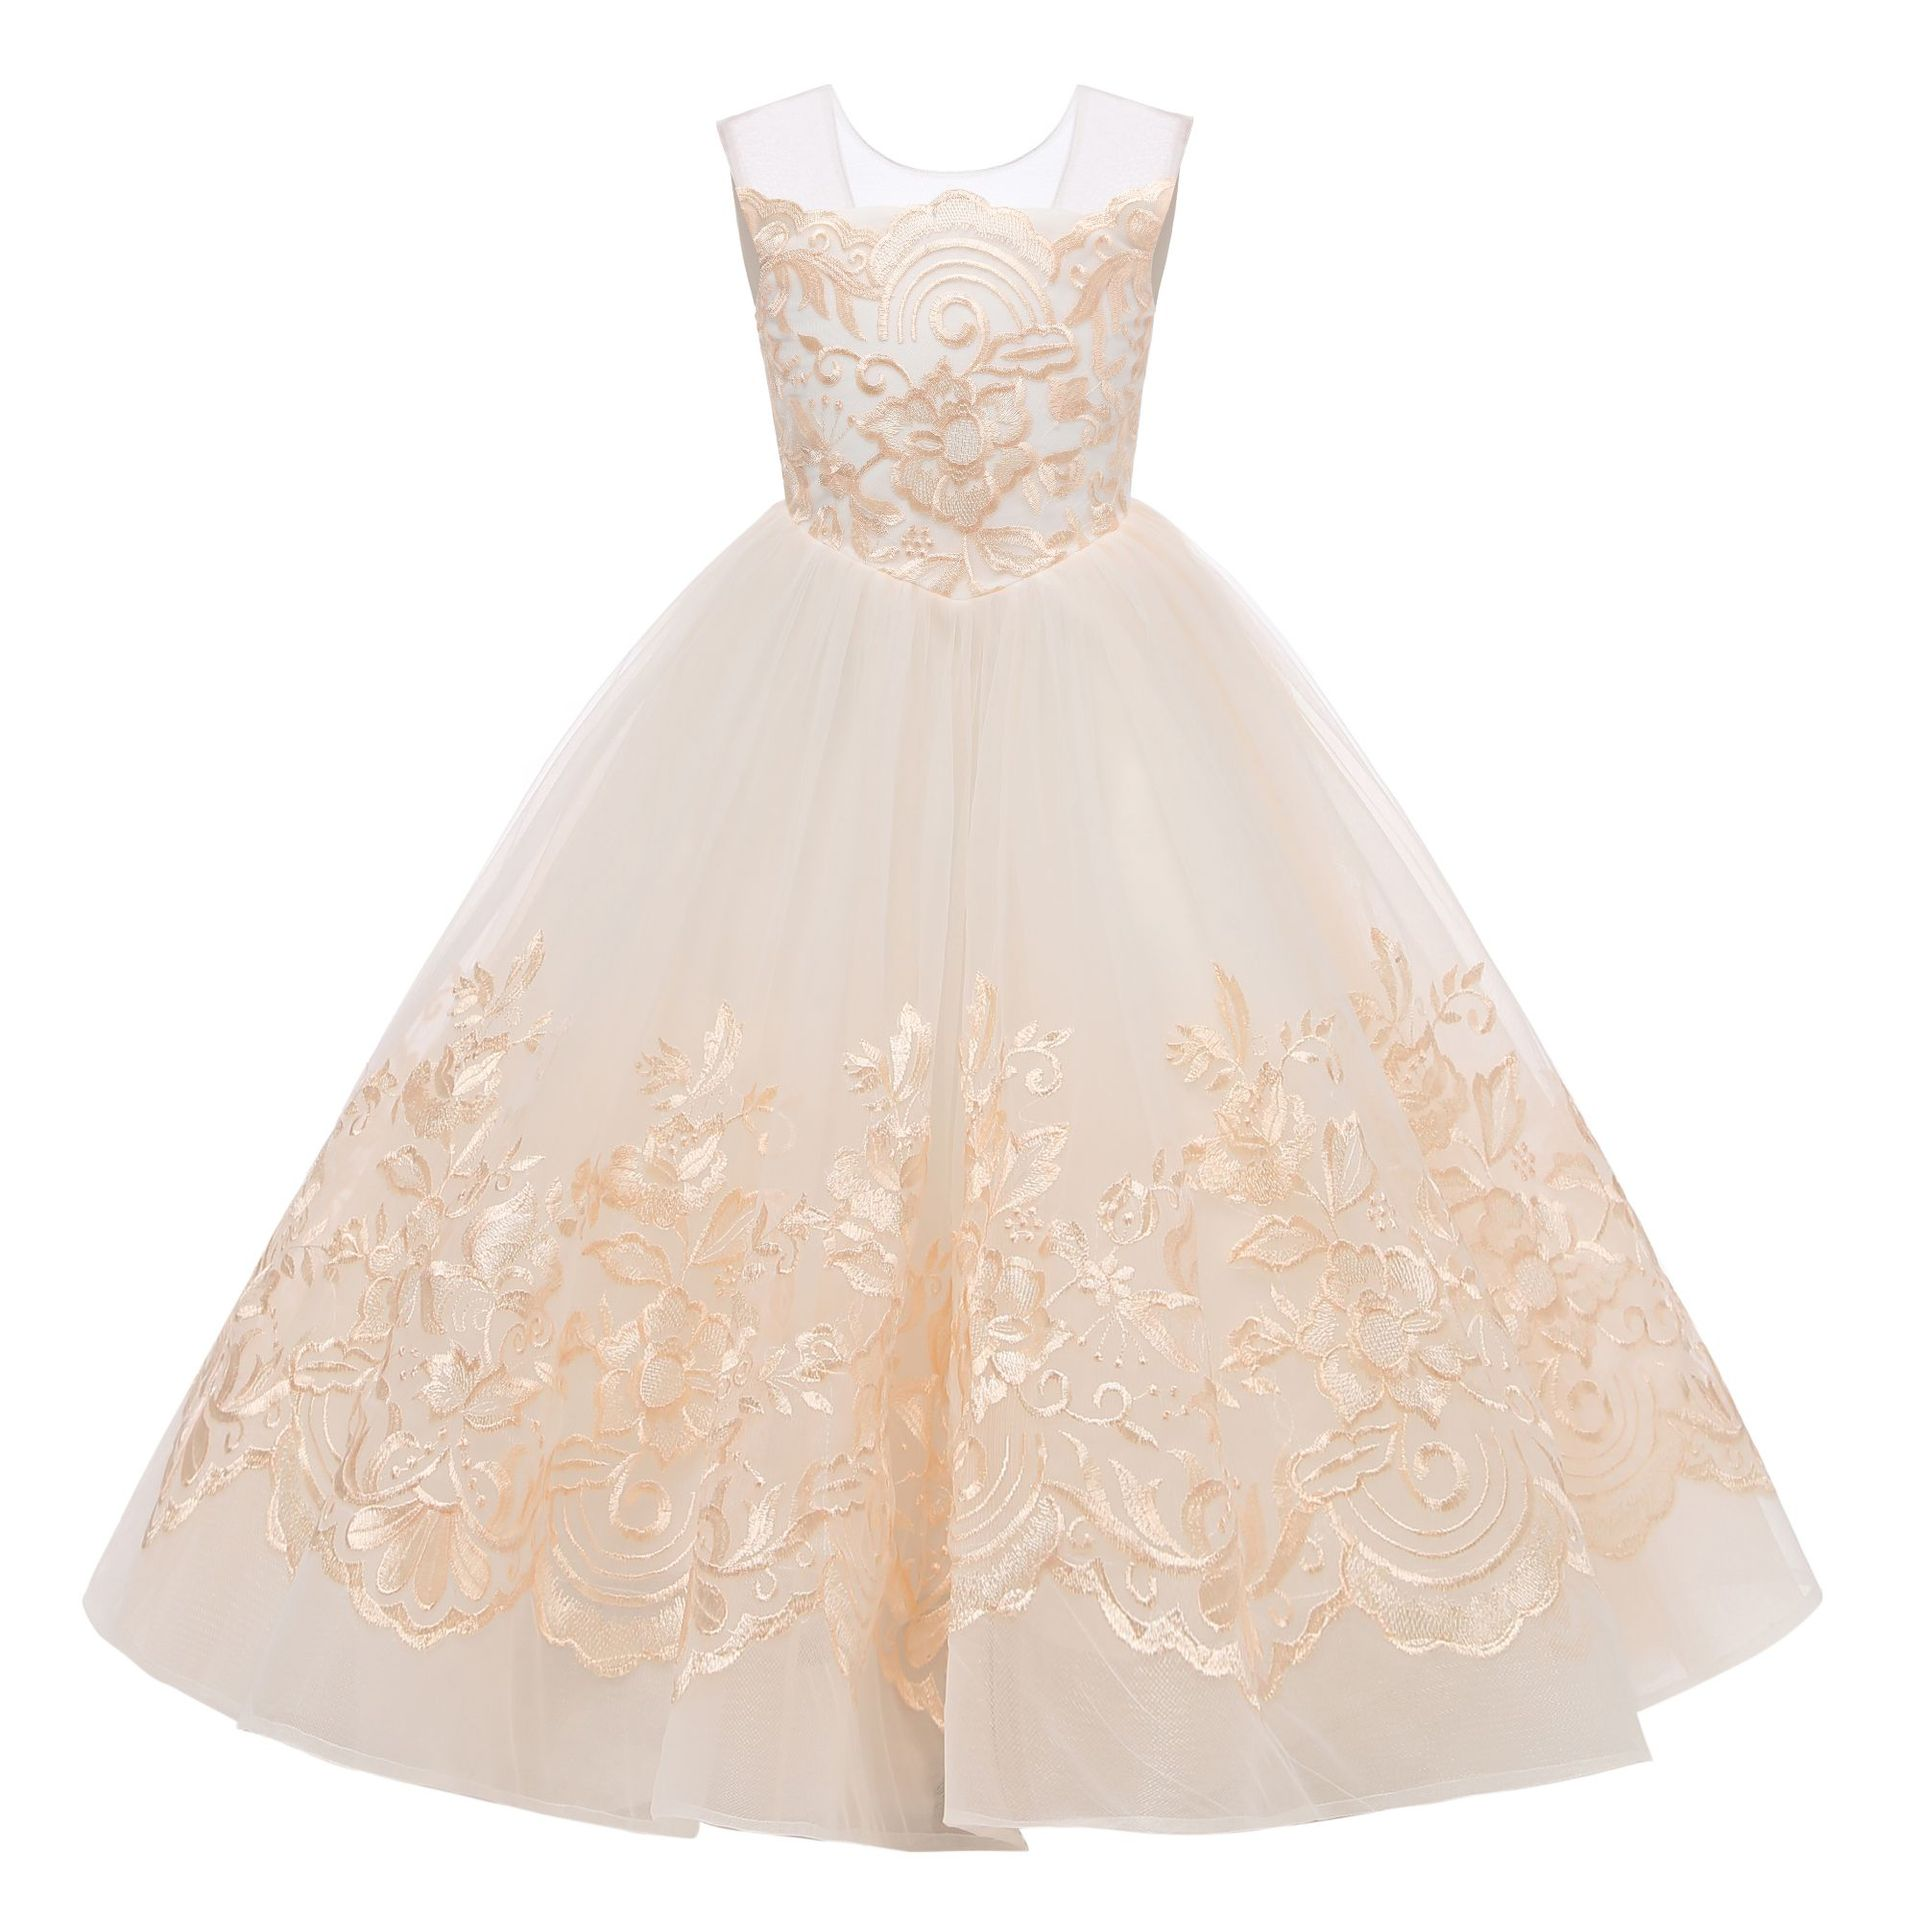 2021 Teen Girls Dresses for Party Wedding Ball Gown Princess Bridesmaid Costume Dresses for Kids Clothes Girl Children's Dresses 4